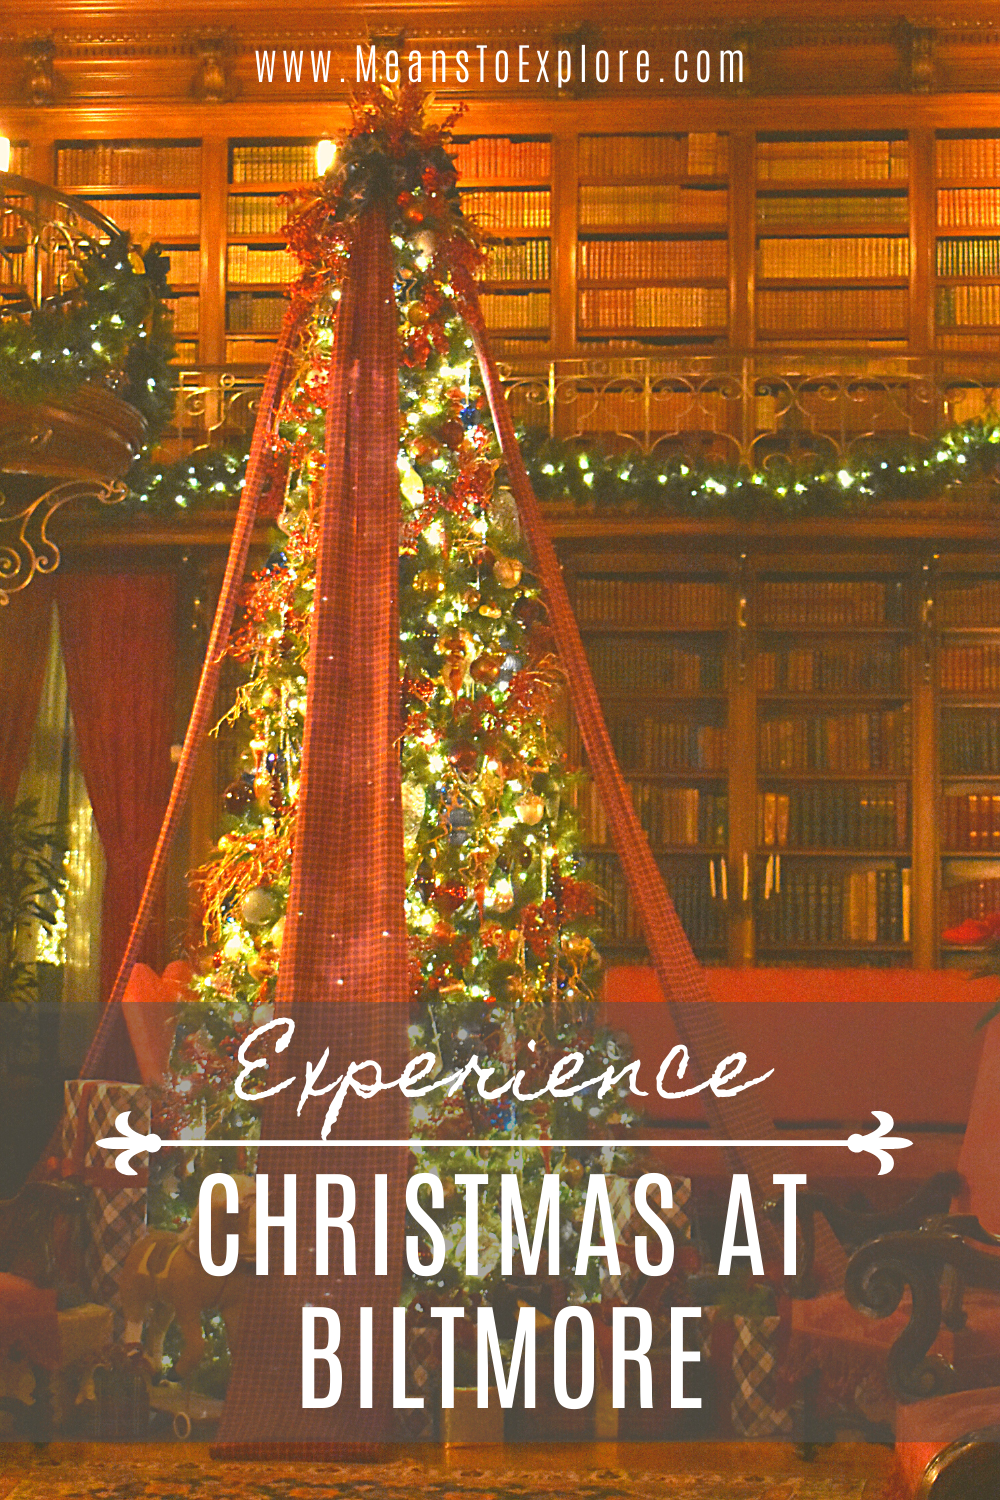 Can T Miss Christmas At Biltmore In 2020 Christmas Travel Destinations Christmas Travel Holiday Travel Gifts